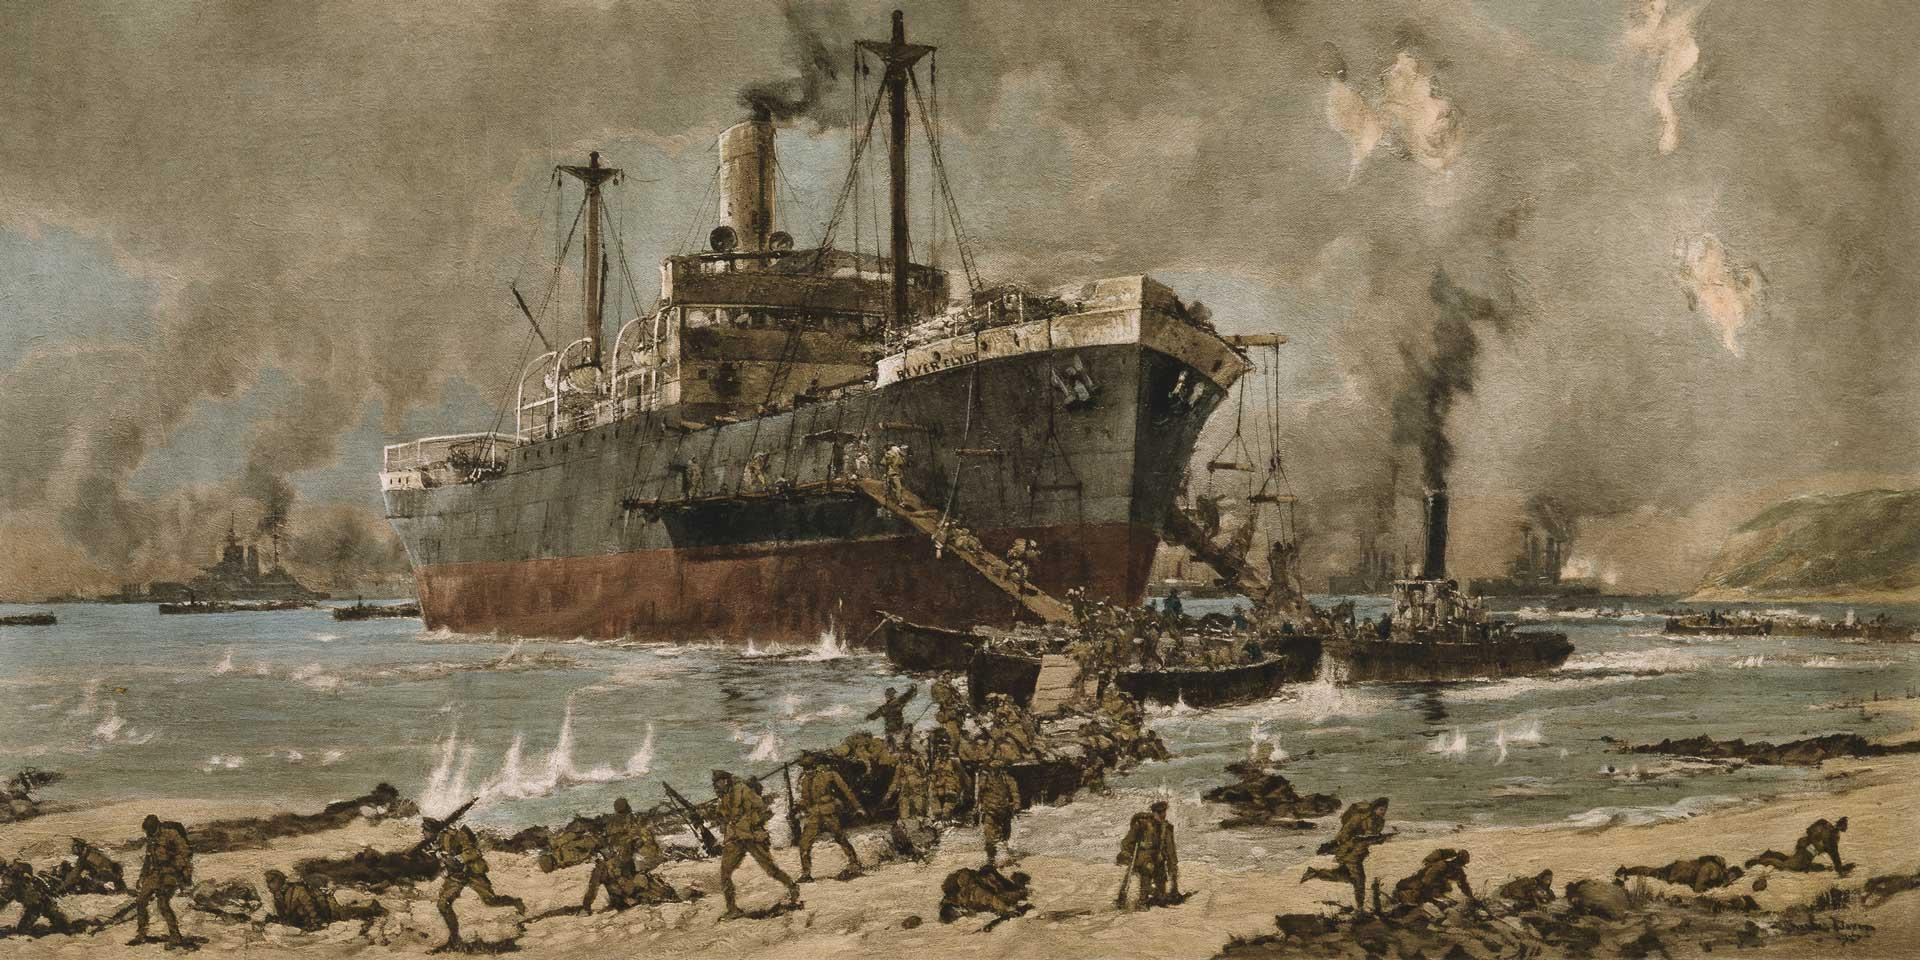 The SS 'River Clyde' landing troops at Cape Helles, Gallipoli, 25 April 1915